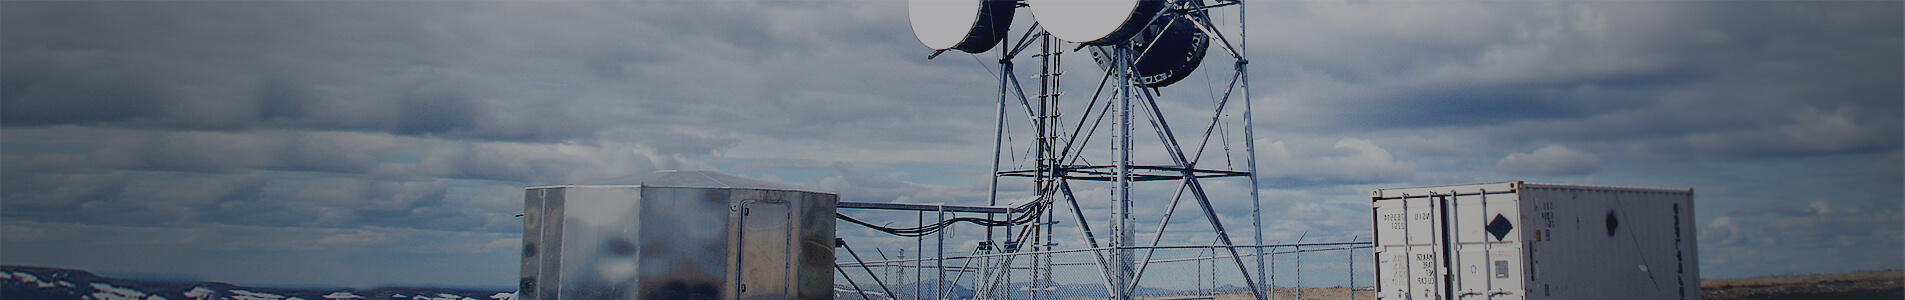 val-bnr-communications-structures_1920x300